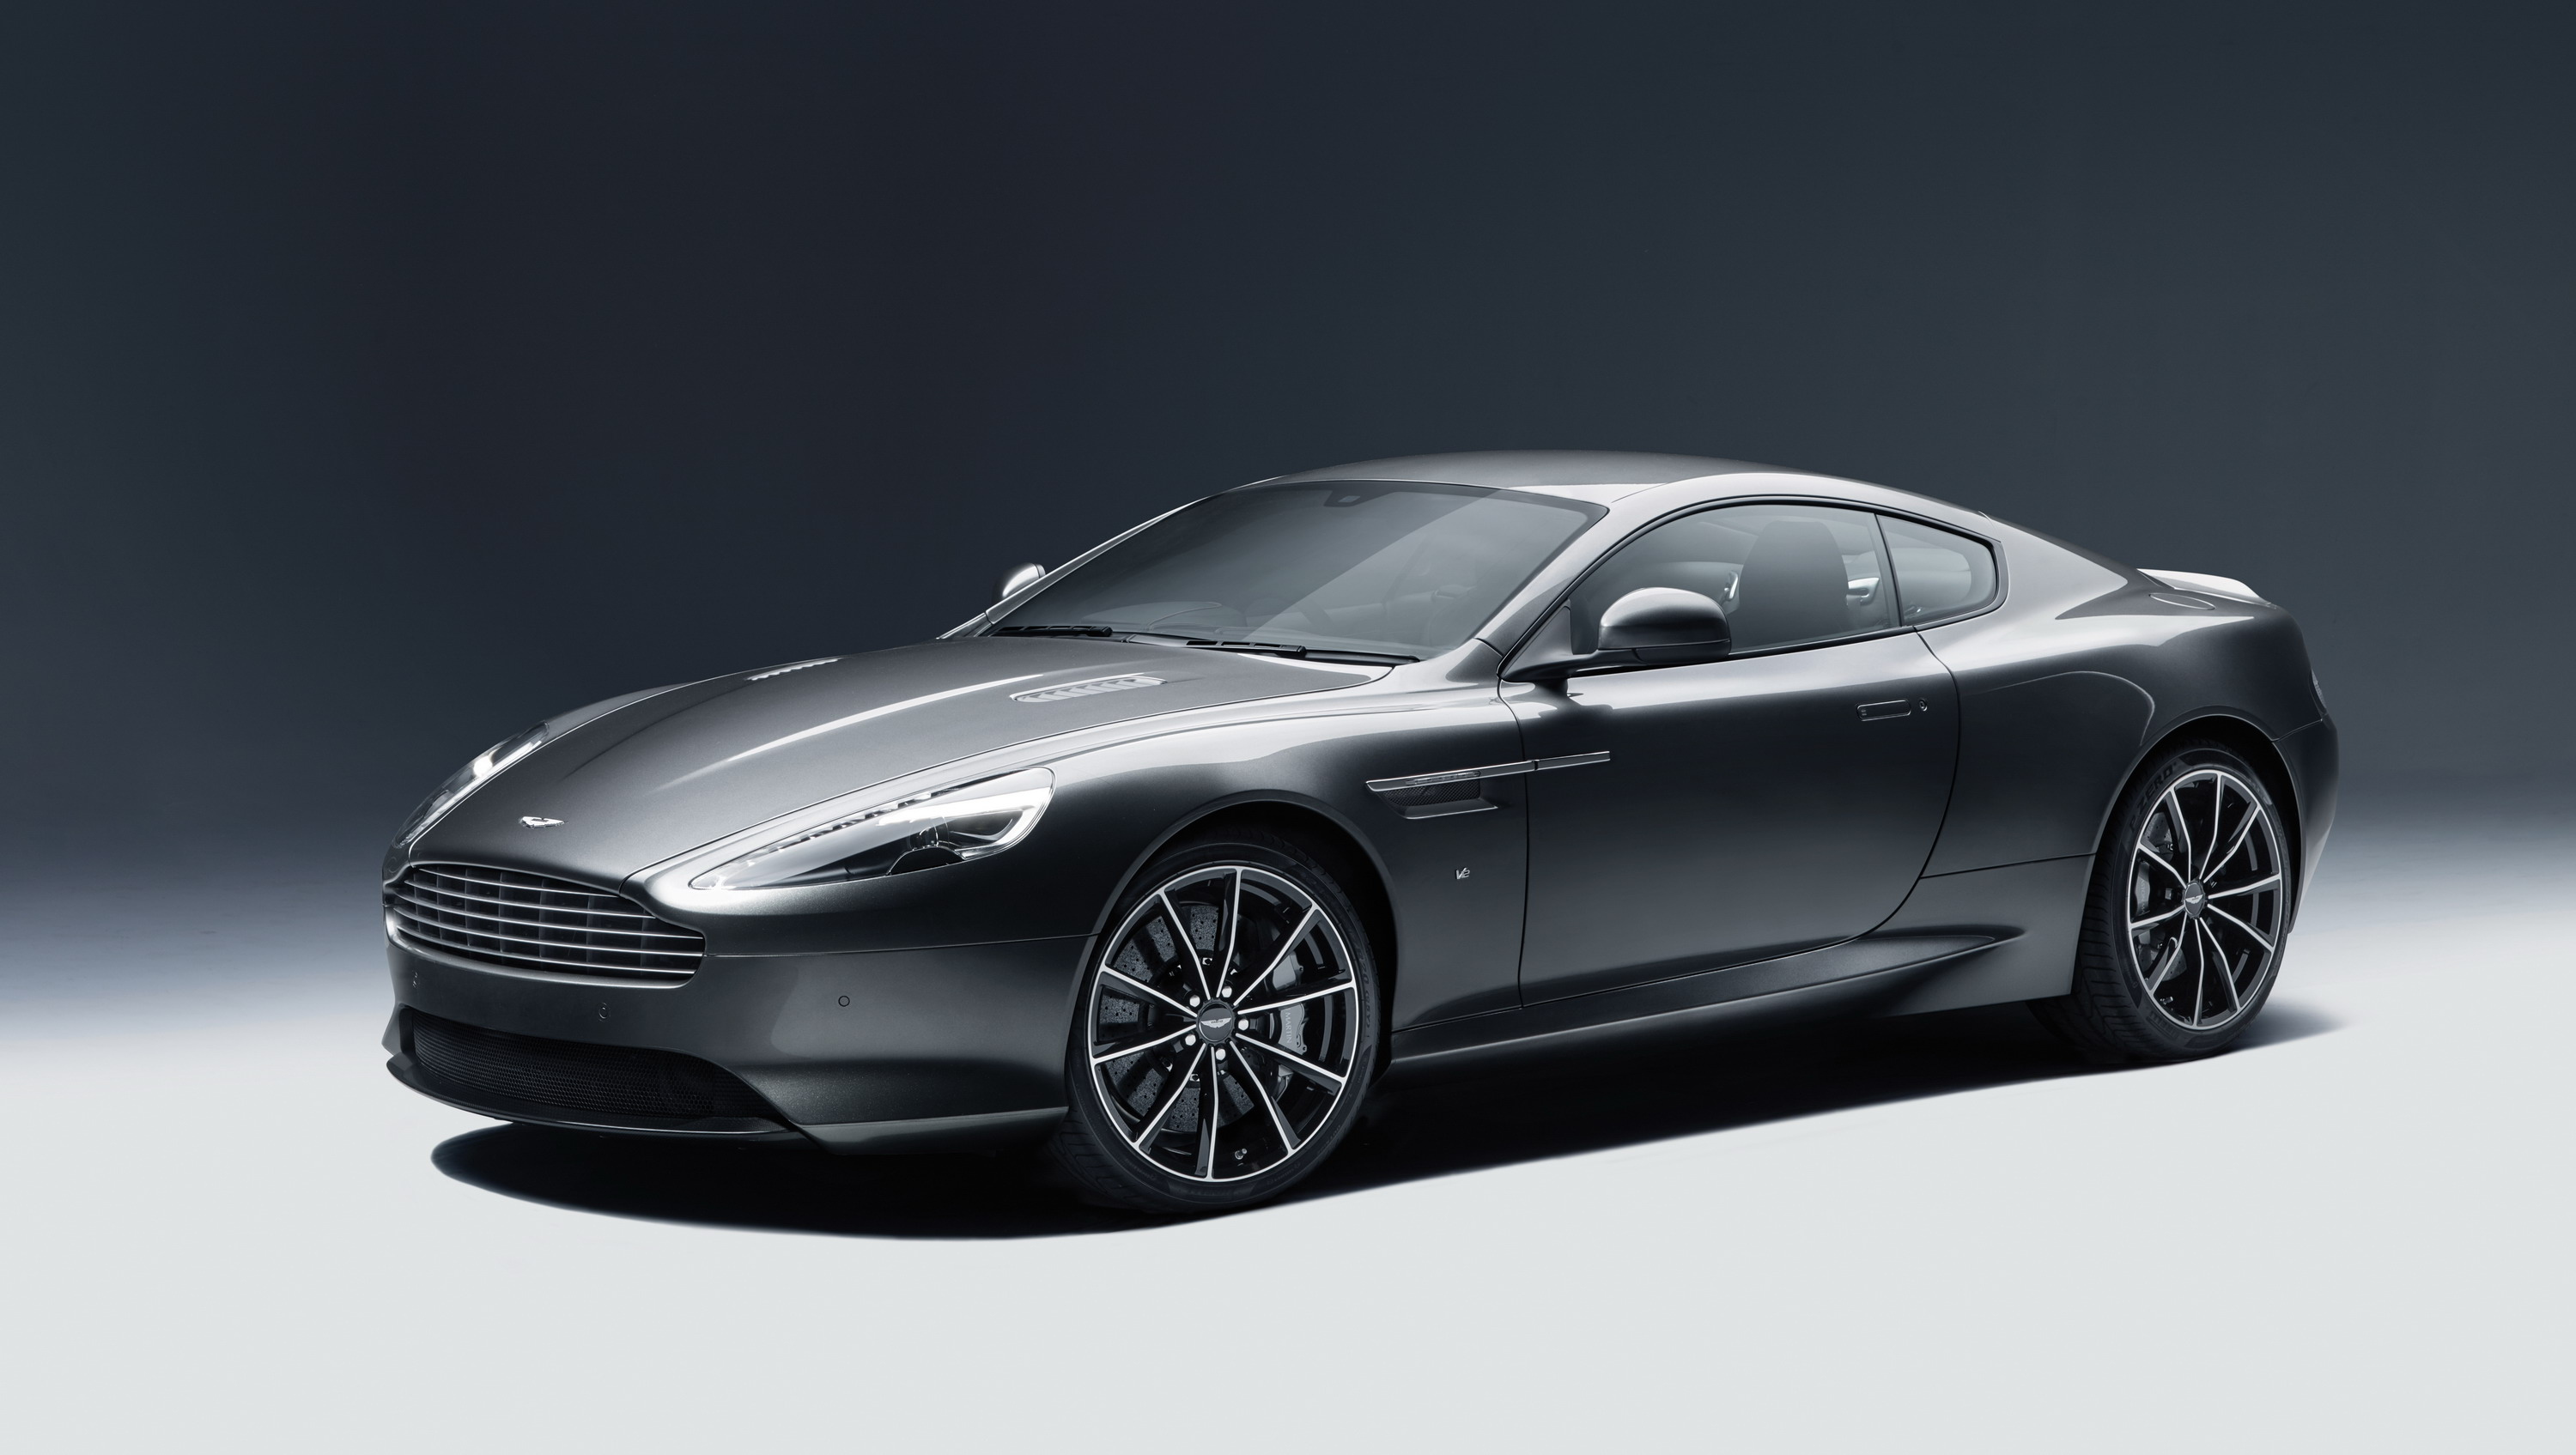 Aston Martin DB9 I Restyling 2008 - 2012 Coupe #7